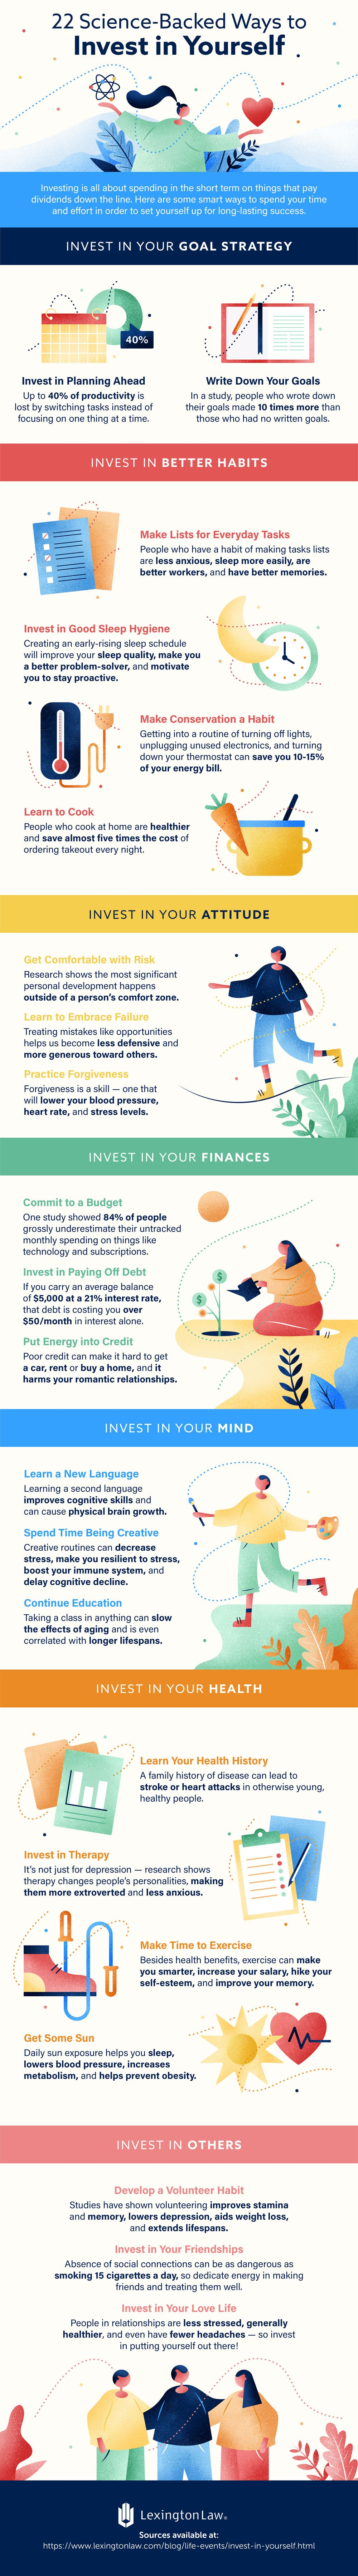 ways to invest in yourself infographic